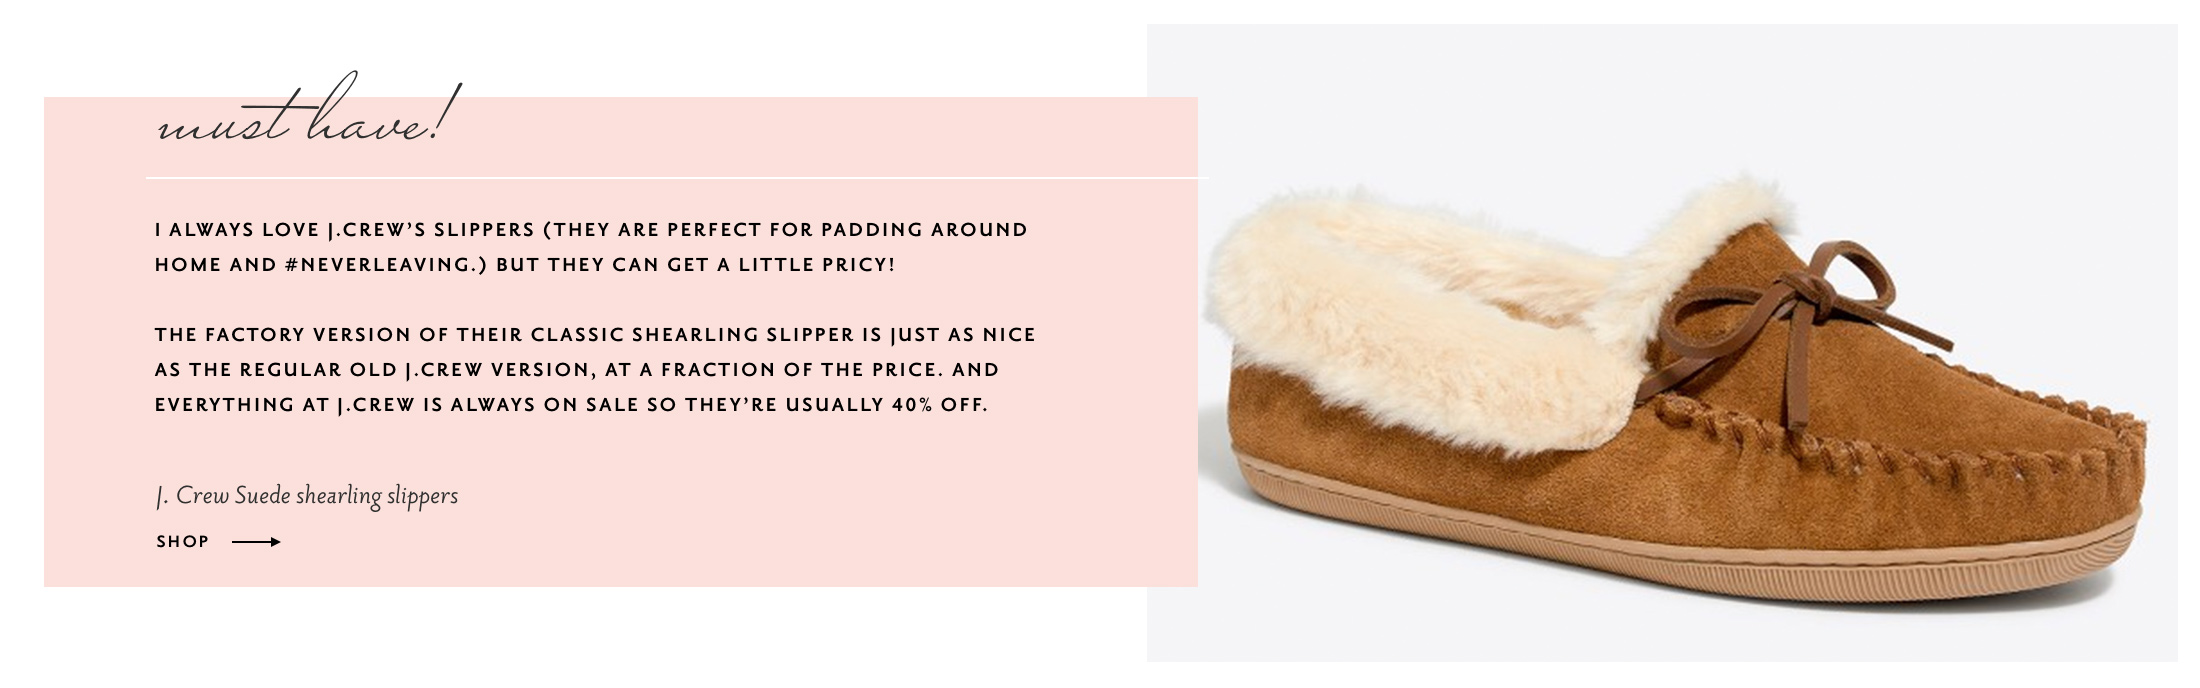 j.crew suede shearling slippers | the stripe holiday 2017 gift guide - for the homebody, gifts for the book lover